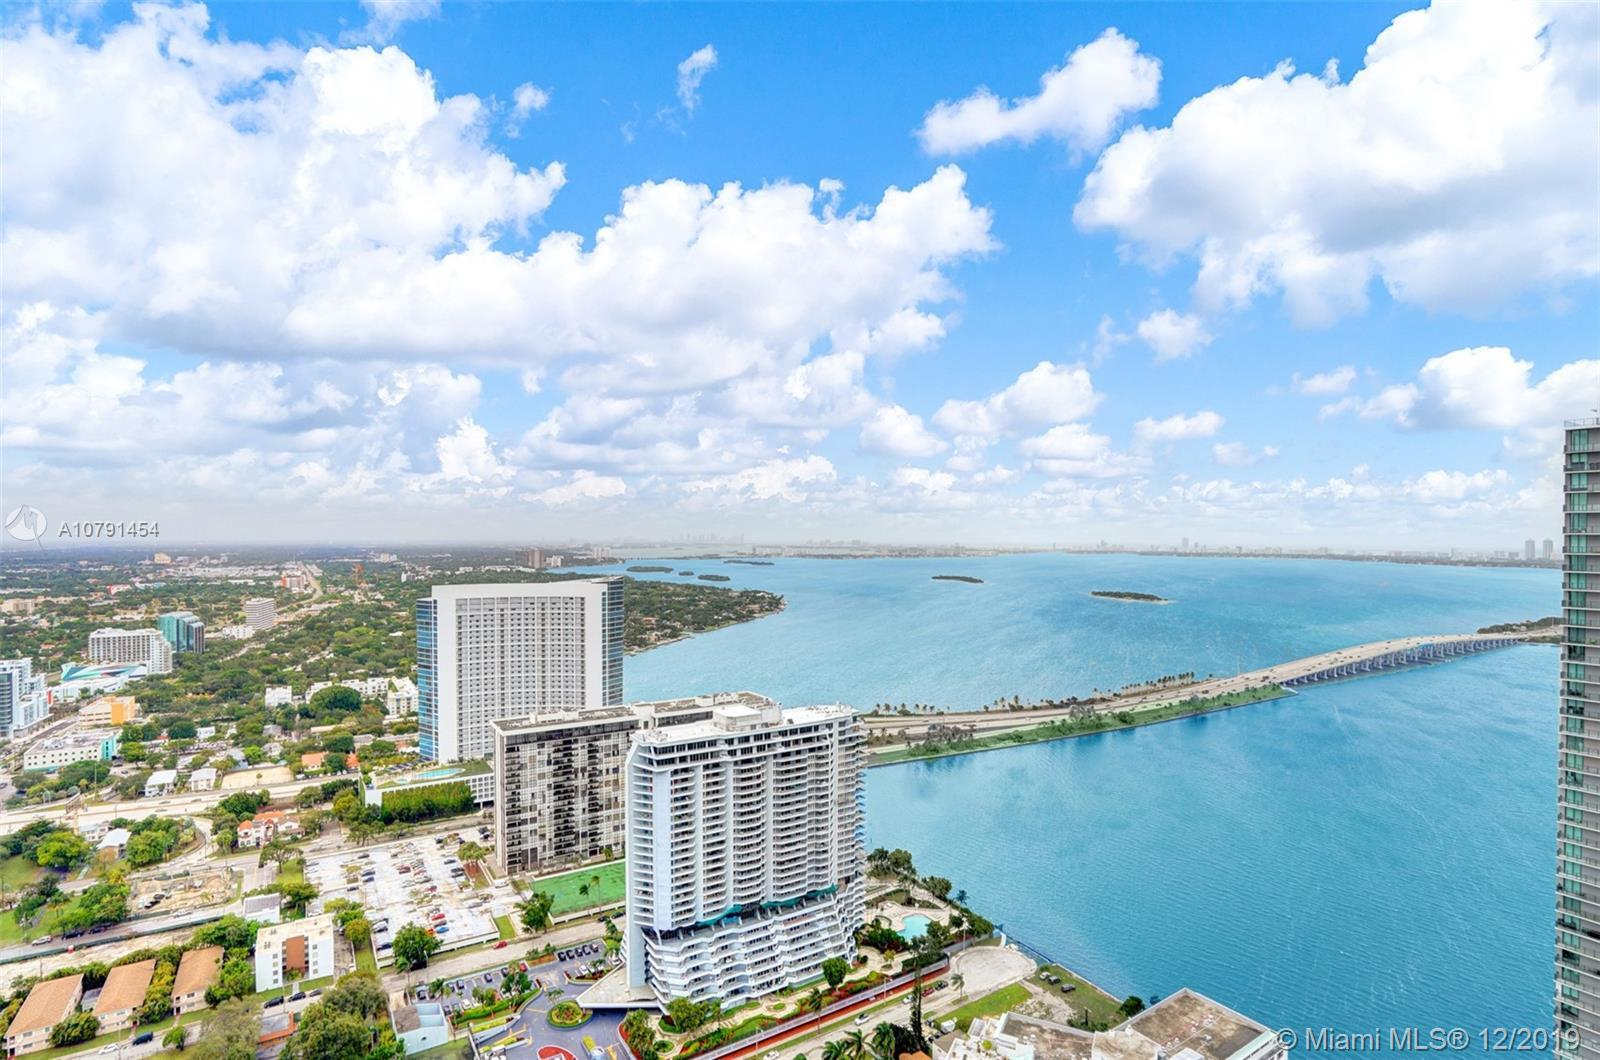 BEST VALUE IN PARAISO ON THE BAY IN THE TRENDY EDGEWATER AREA OF MIAMI. THIS BEAUTIFUL ONE BEDROOM S